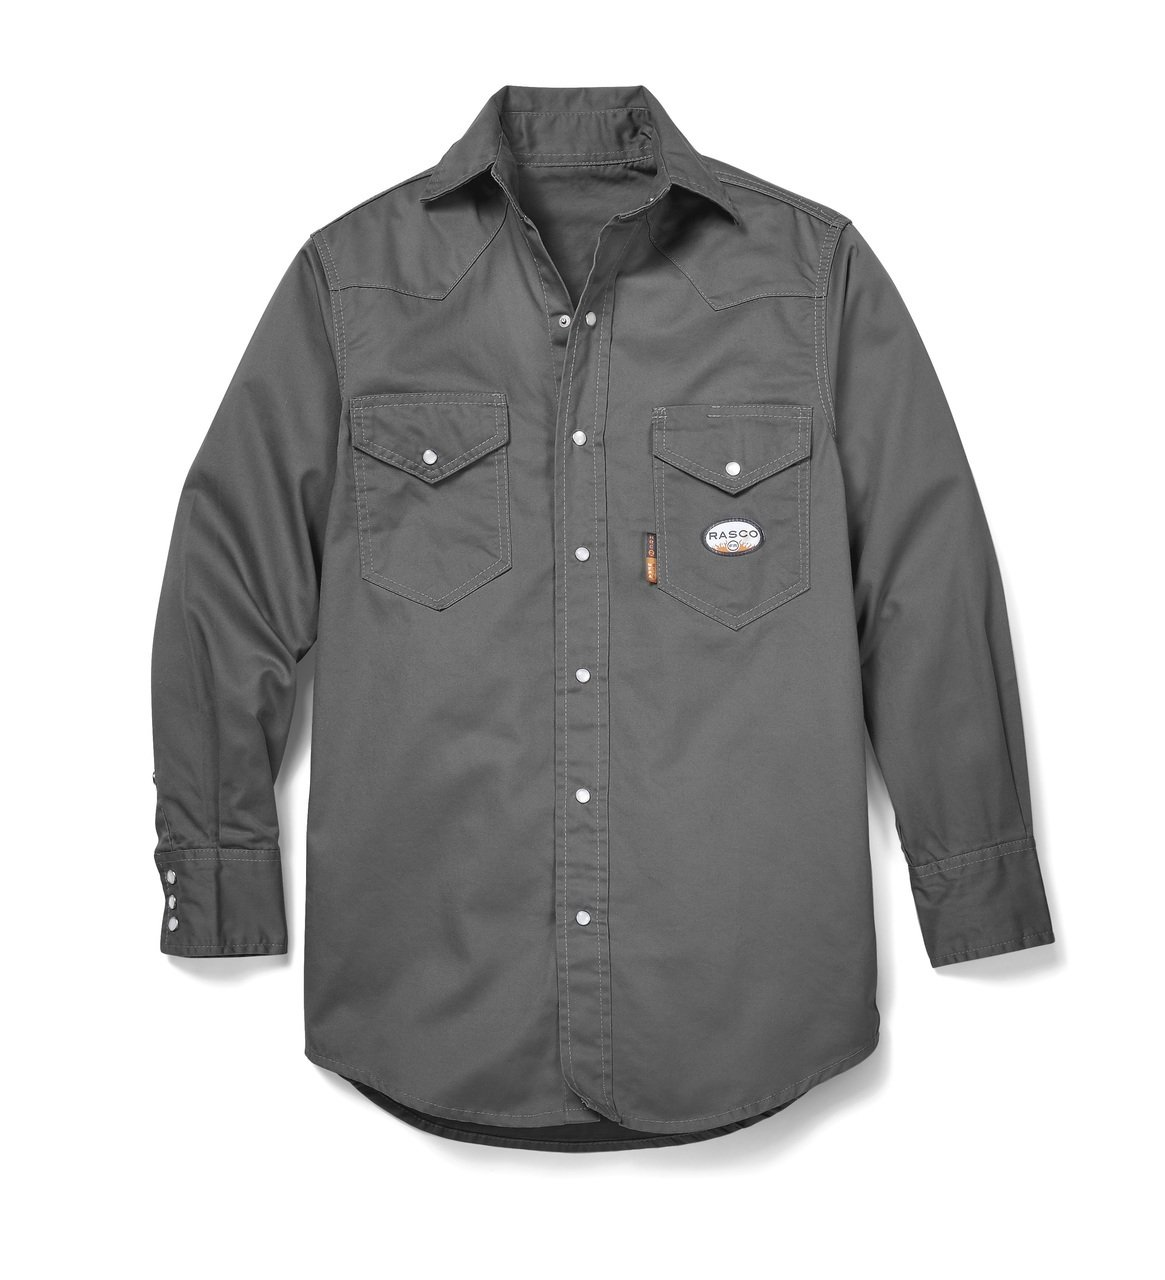 Rasco FR Gray Western Shirt with Snaps 7.5 oz - GR754 2XL-Long